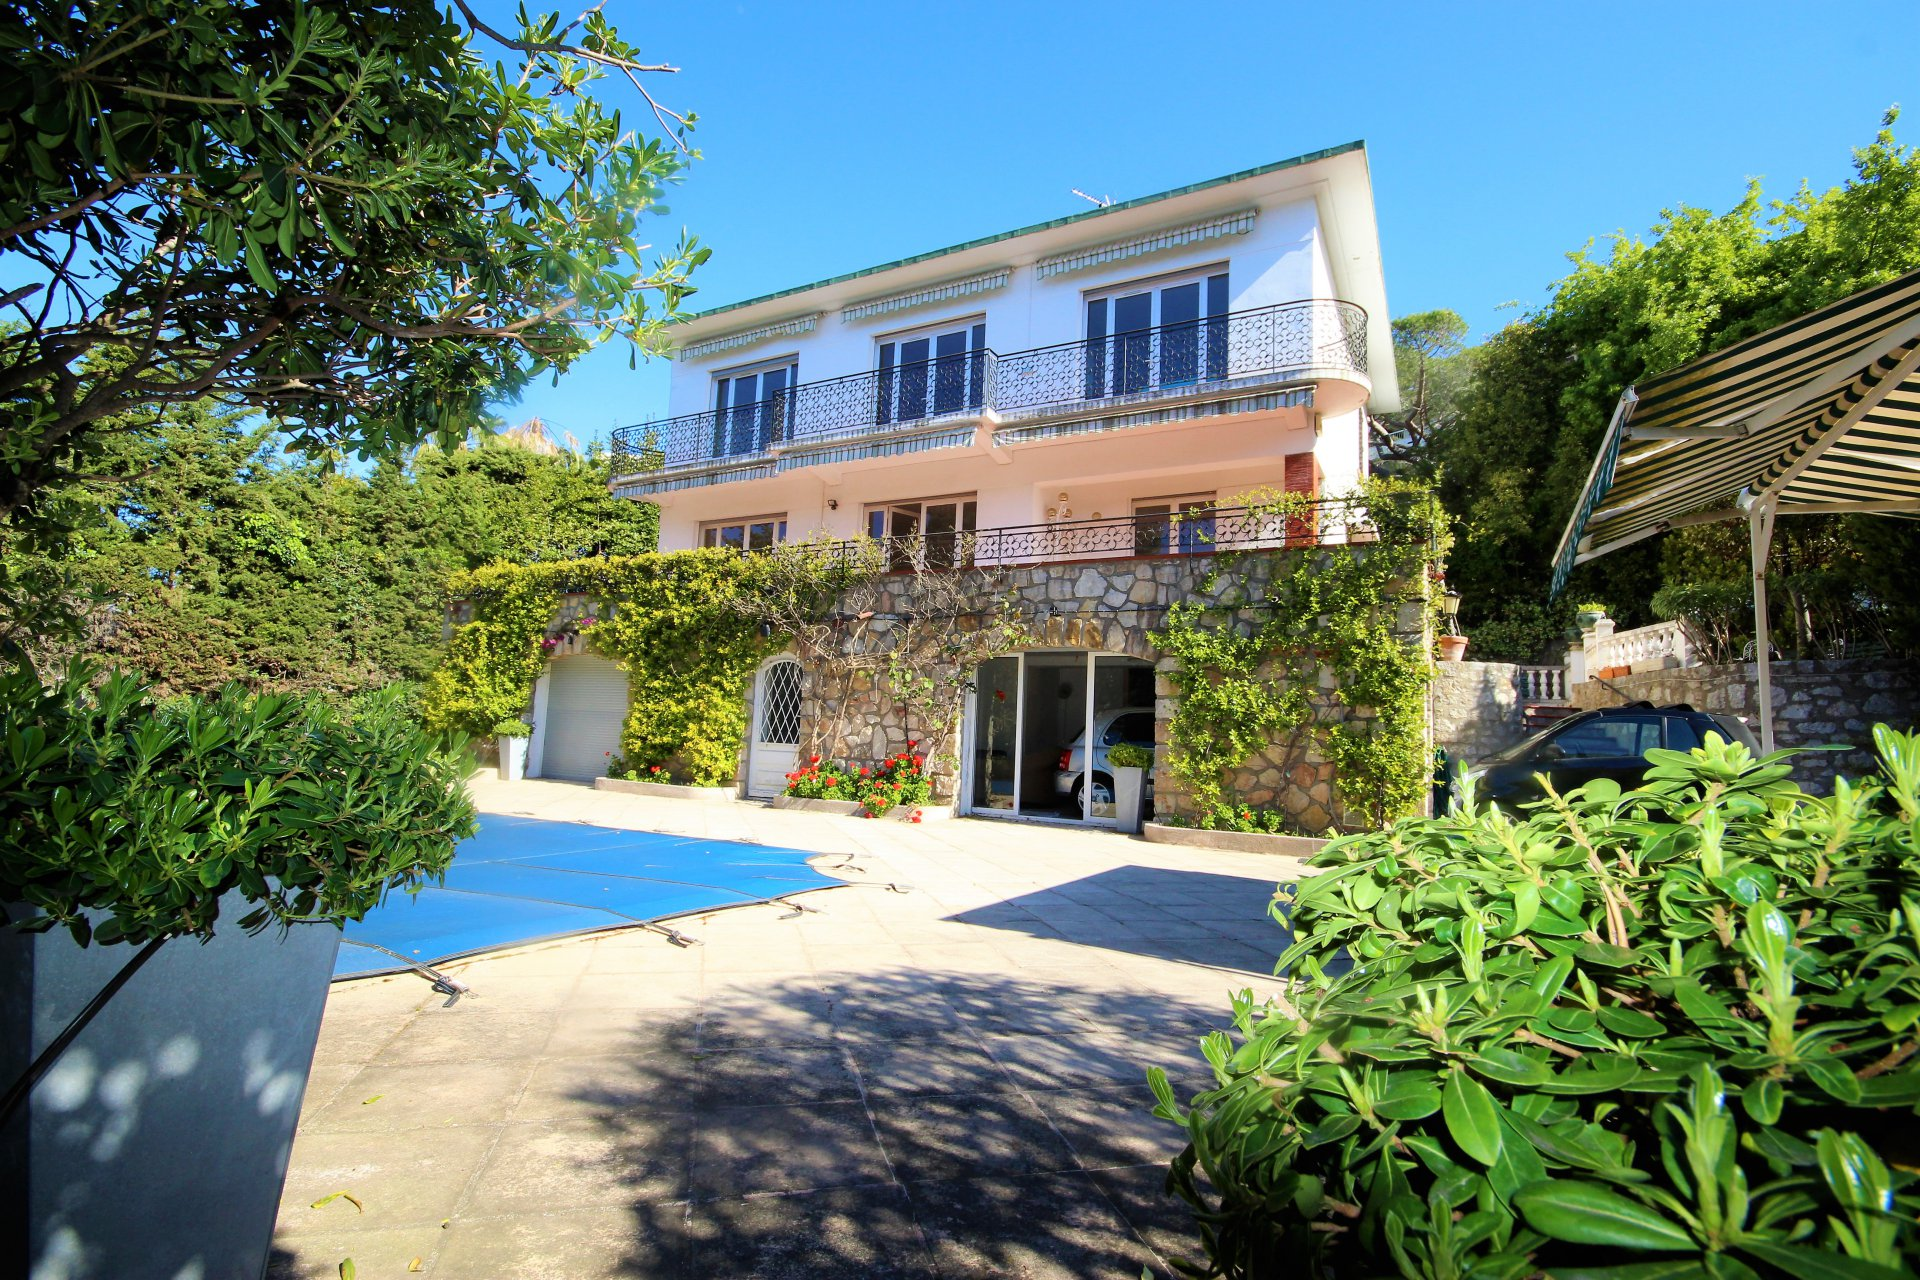 SALE 5-ROOM VILLA WITH SWIMMING POOL NEAR BEACHES